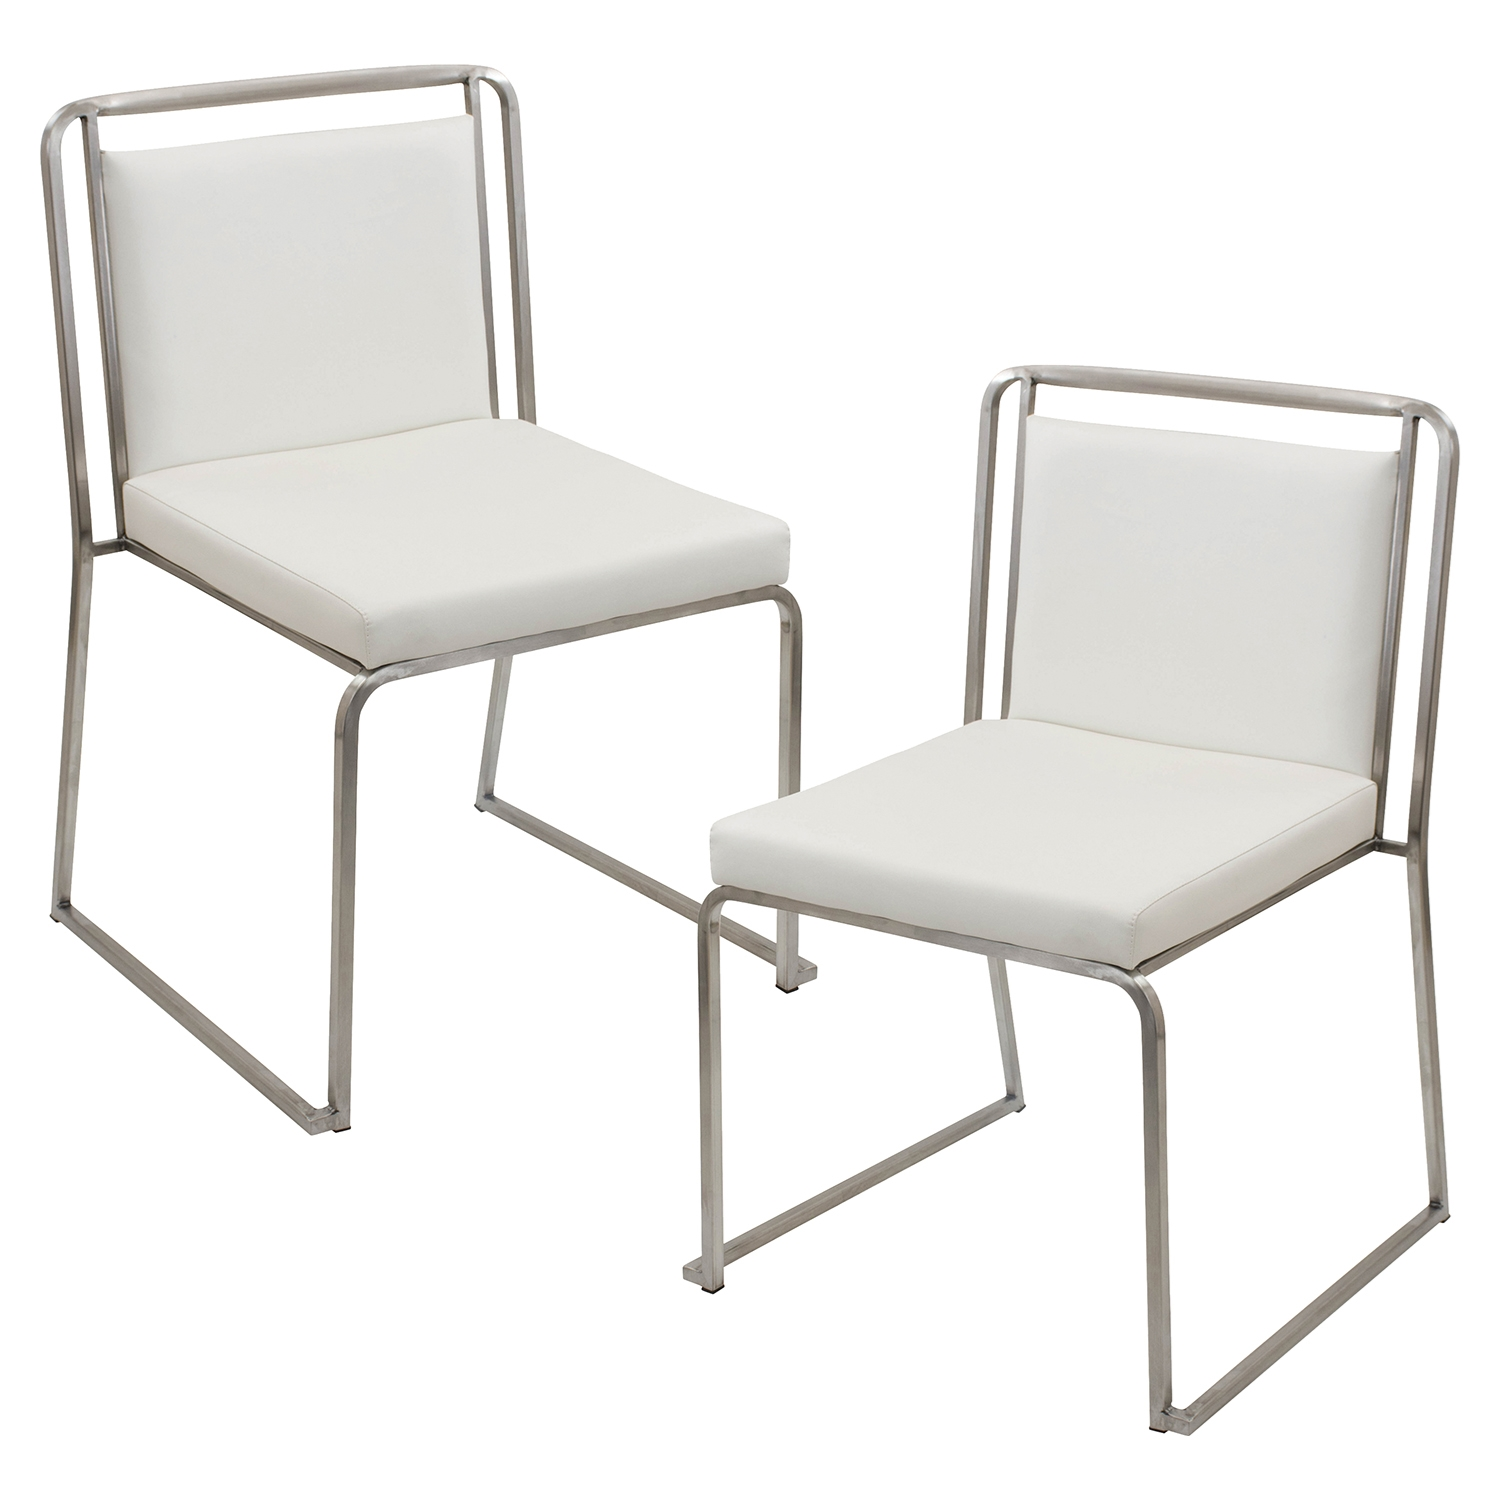 Cascade Stackable Dining Chair - White (Set of 2) - LMS-CH-CASC-W2